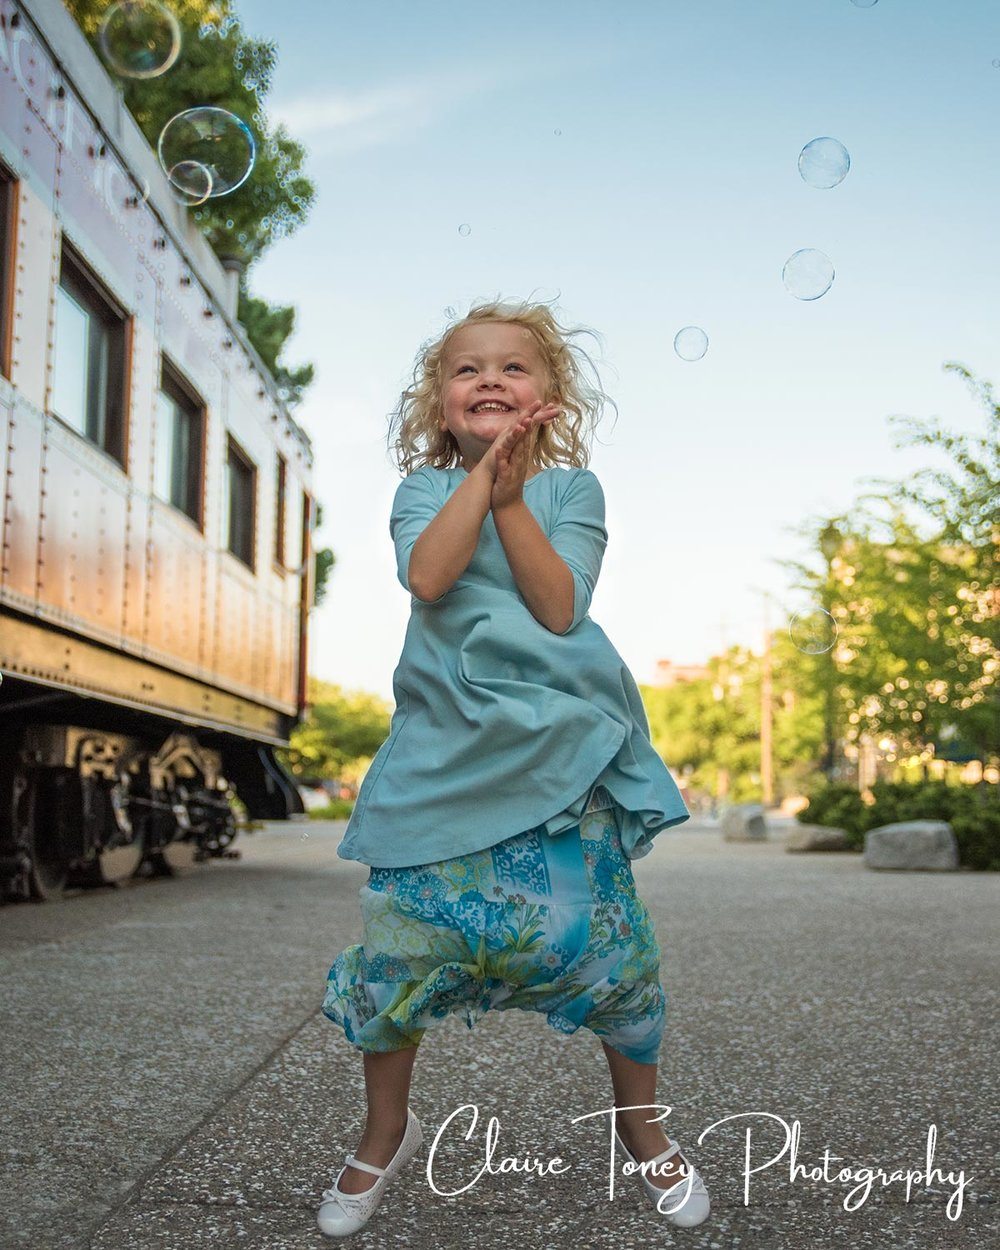 Little girl jumping for joy with bubbles surrounding her. Child photography. Claire Toney Photography, Sacramento Photographer